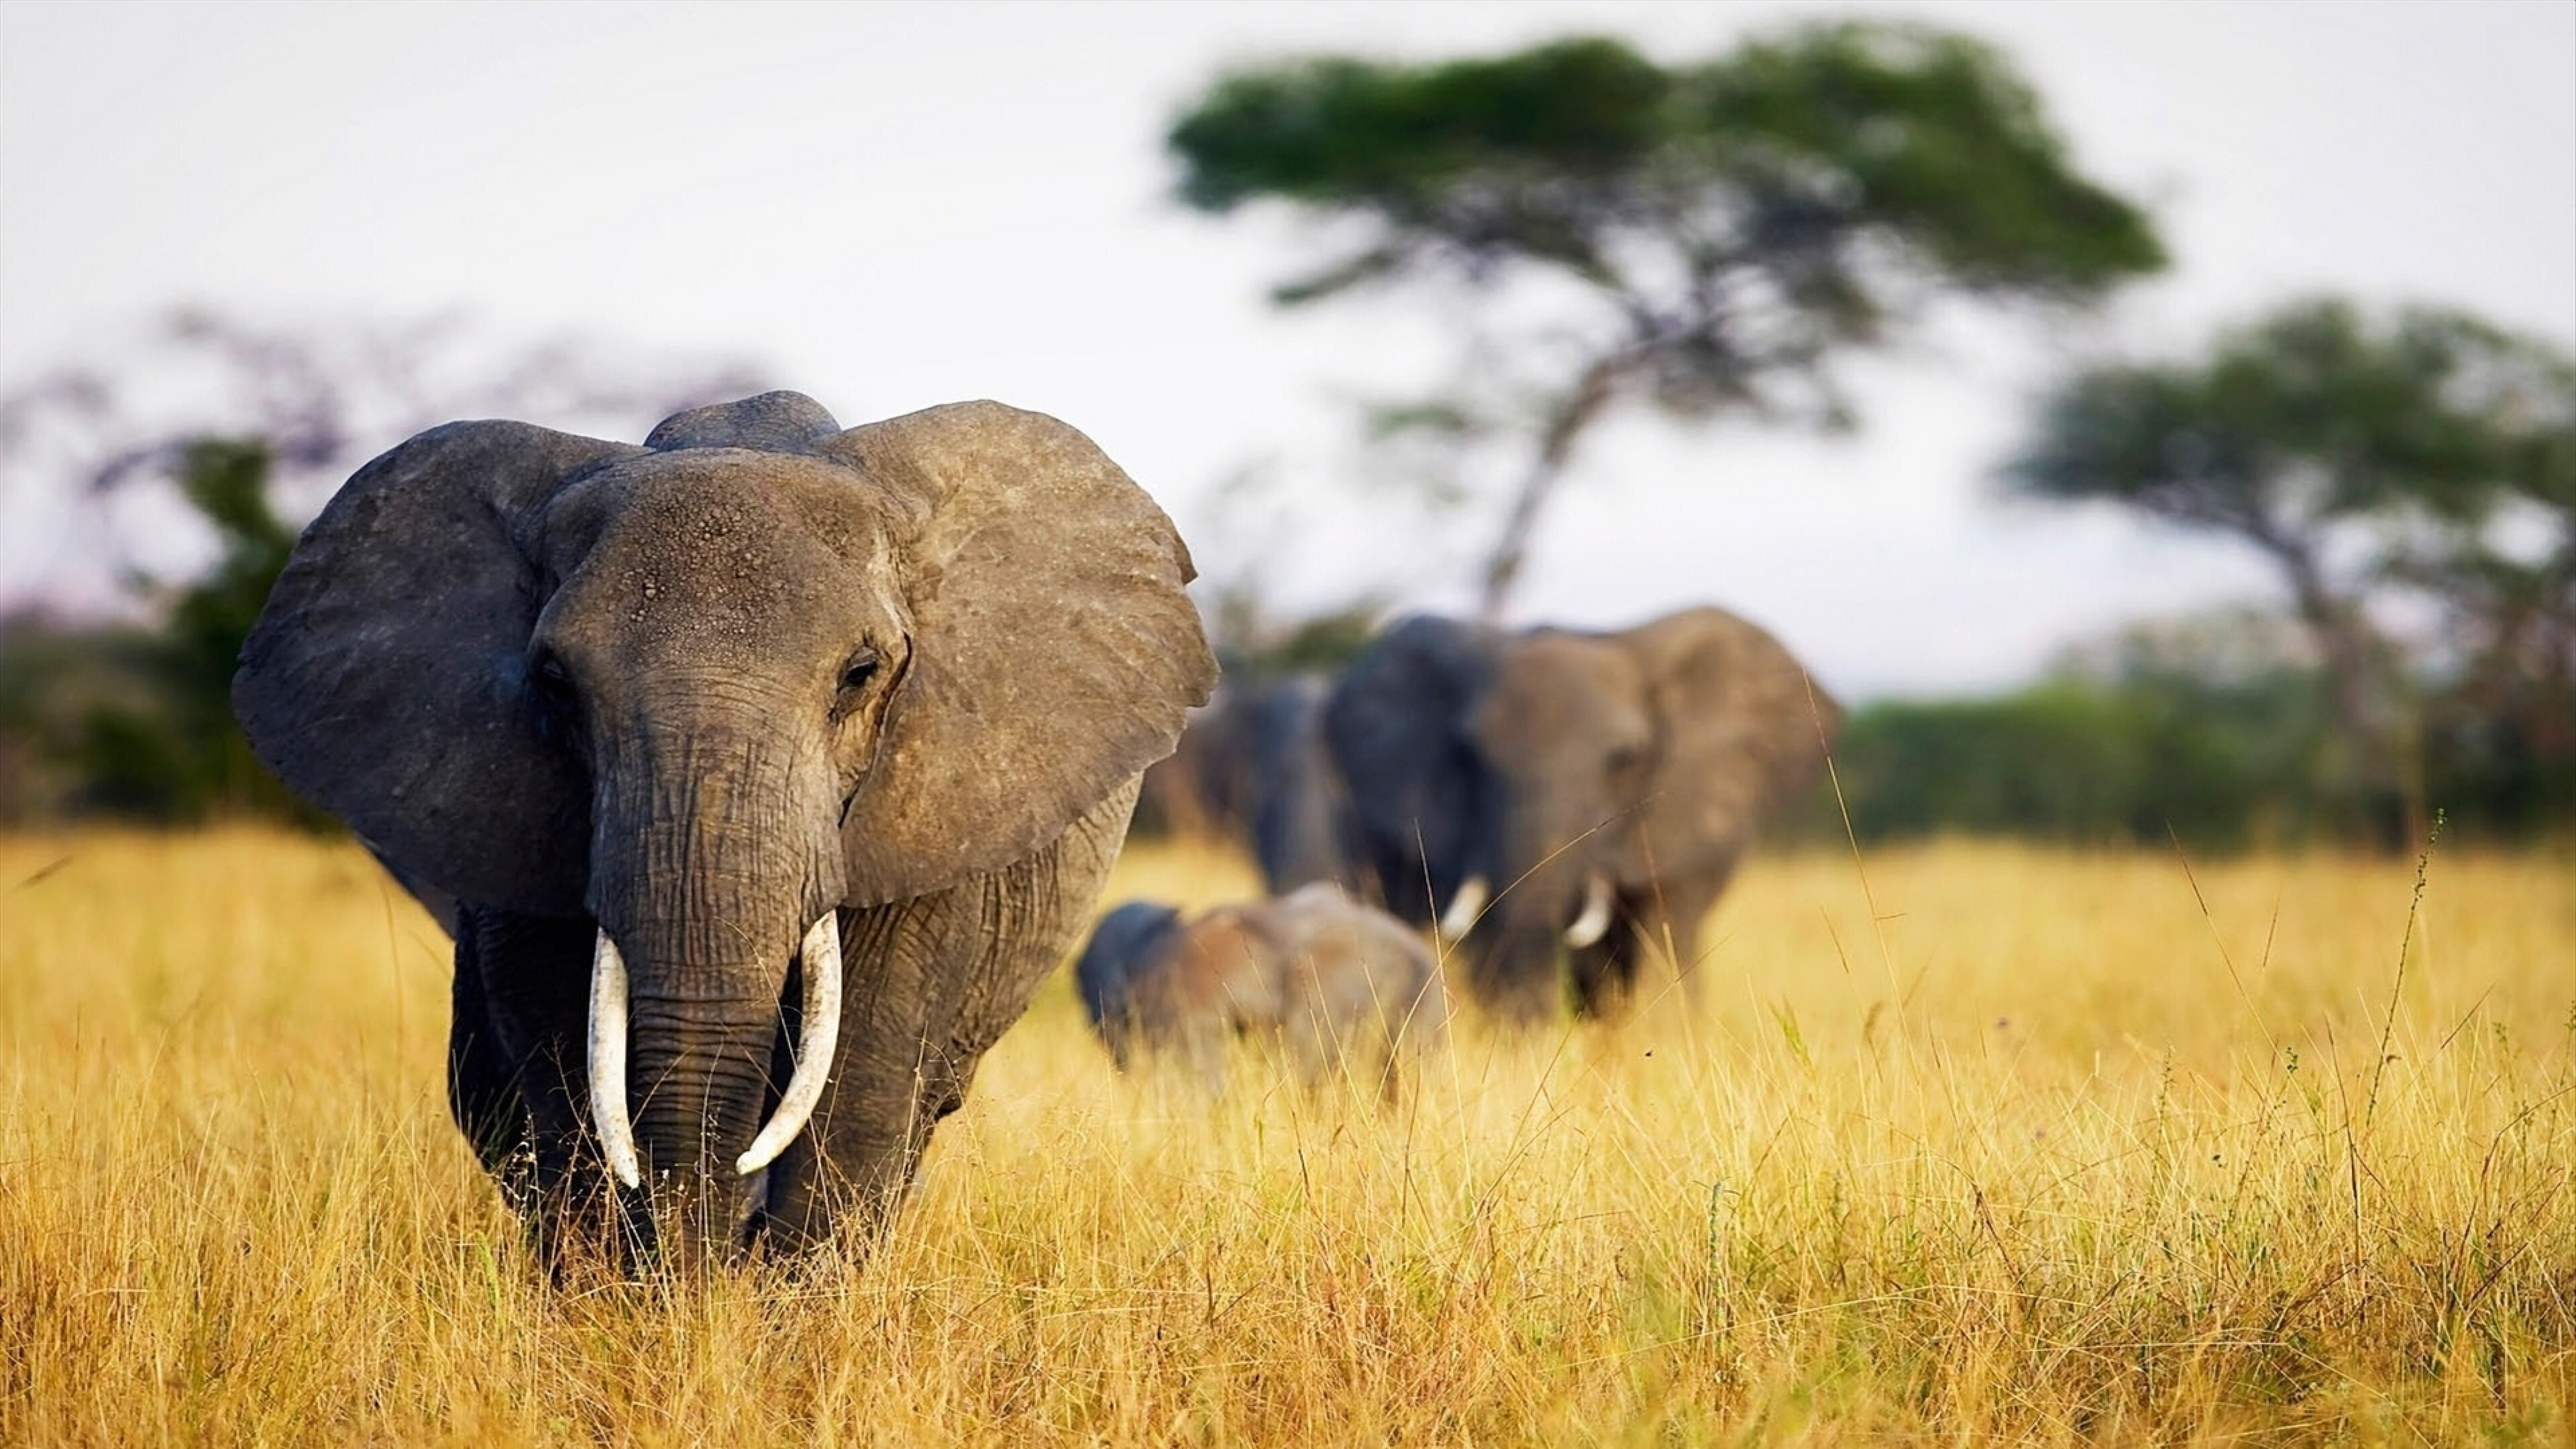 Wildlife Elephant 4K Pic Download   HD Wallpapers